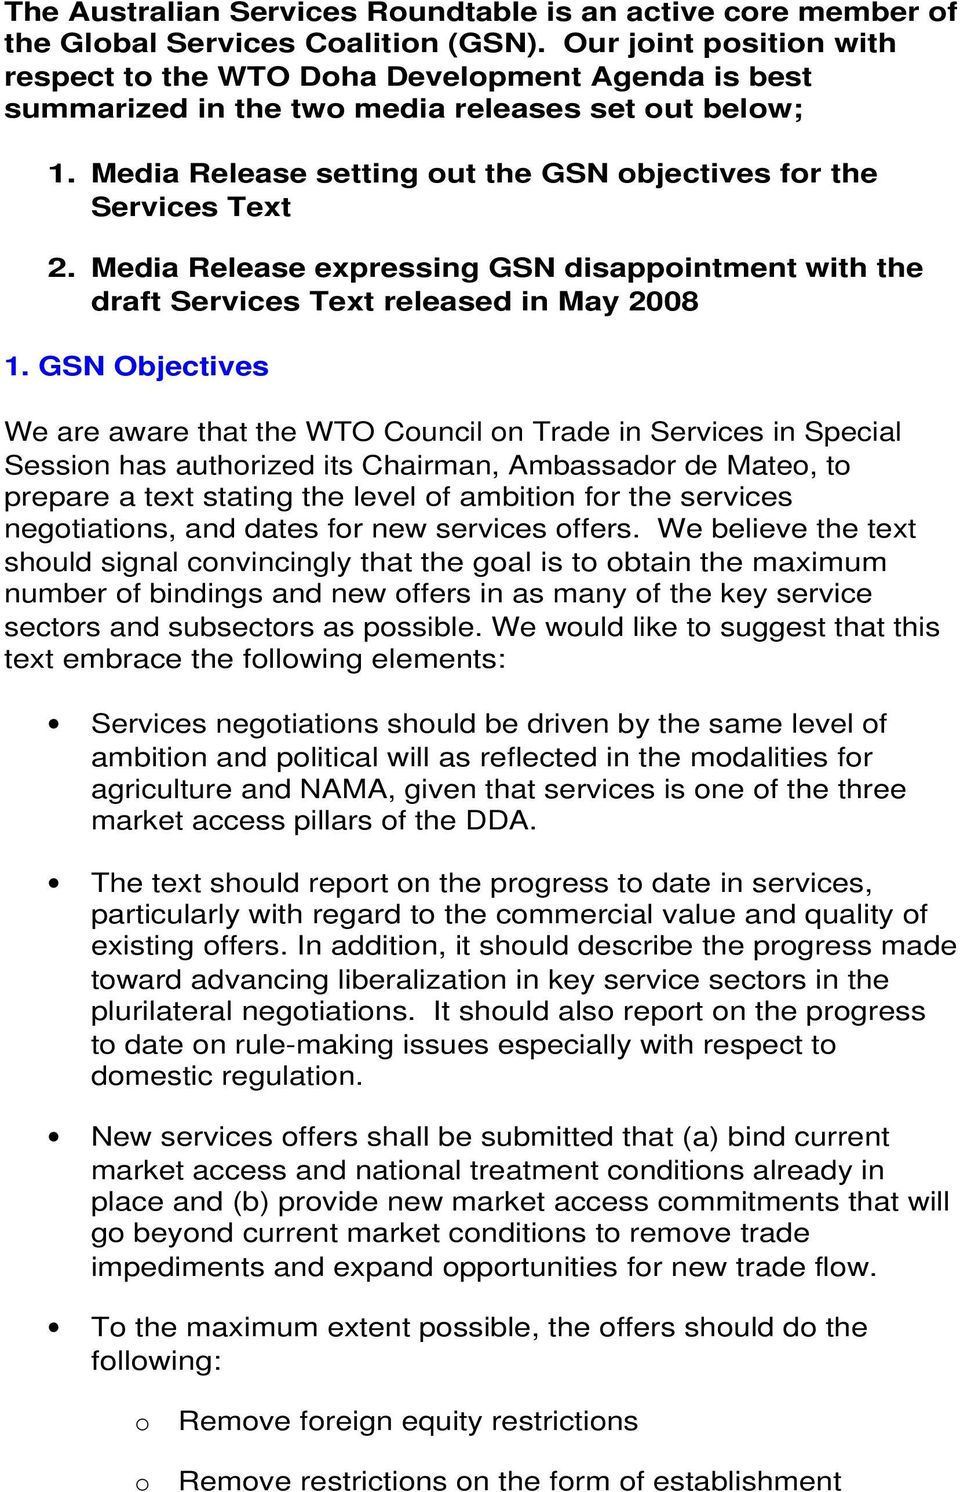 Media Release expressing GSN disappintment with the draft Services Text released in May 2008 1.